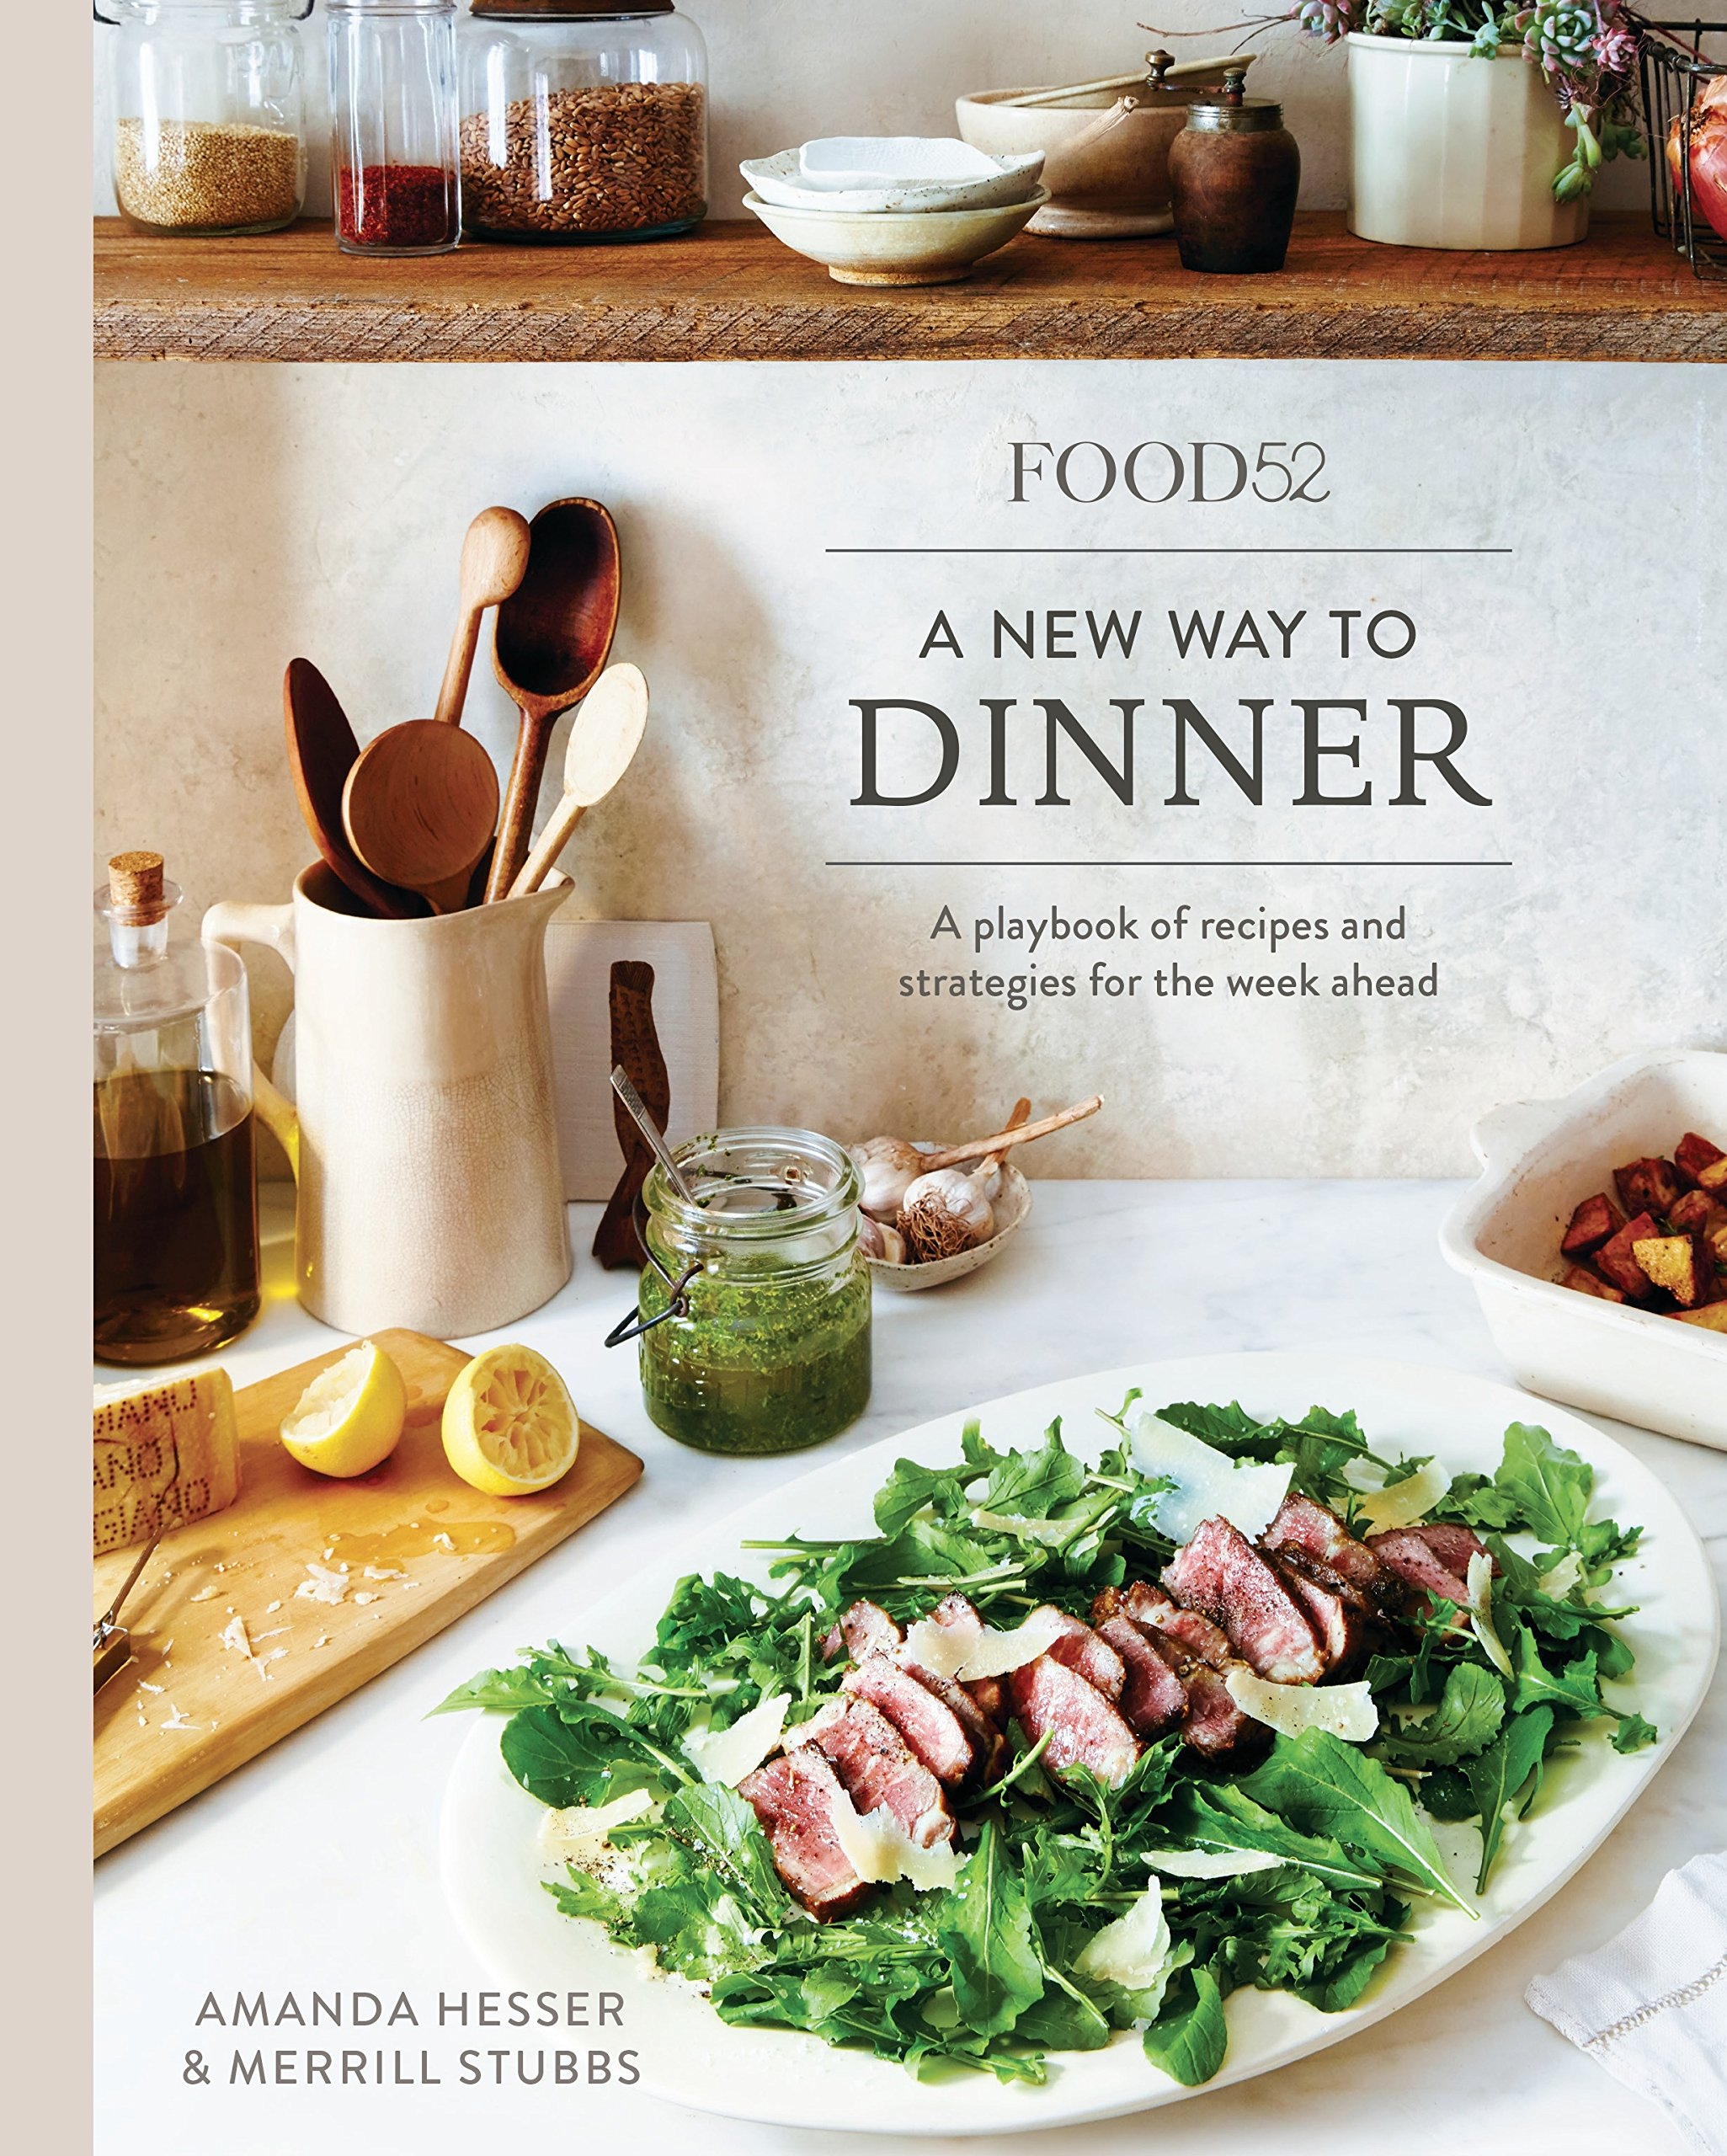 Food52 a new way to dinner a playbook of recipes and strategies food52 a new way to dinner a playbook of recipes and strategies for the week ahead food52 works amanda hesser merrill stubbs 9780399578007 forumfinder Gallery